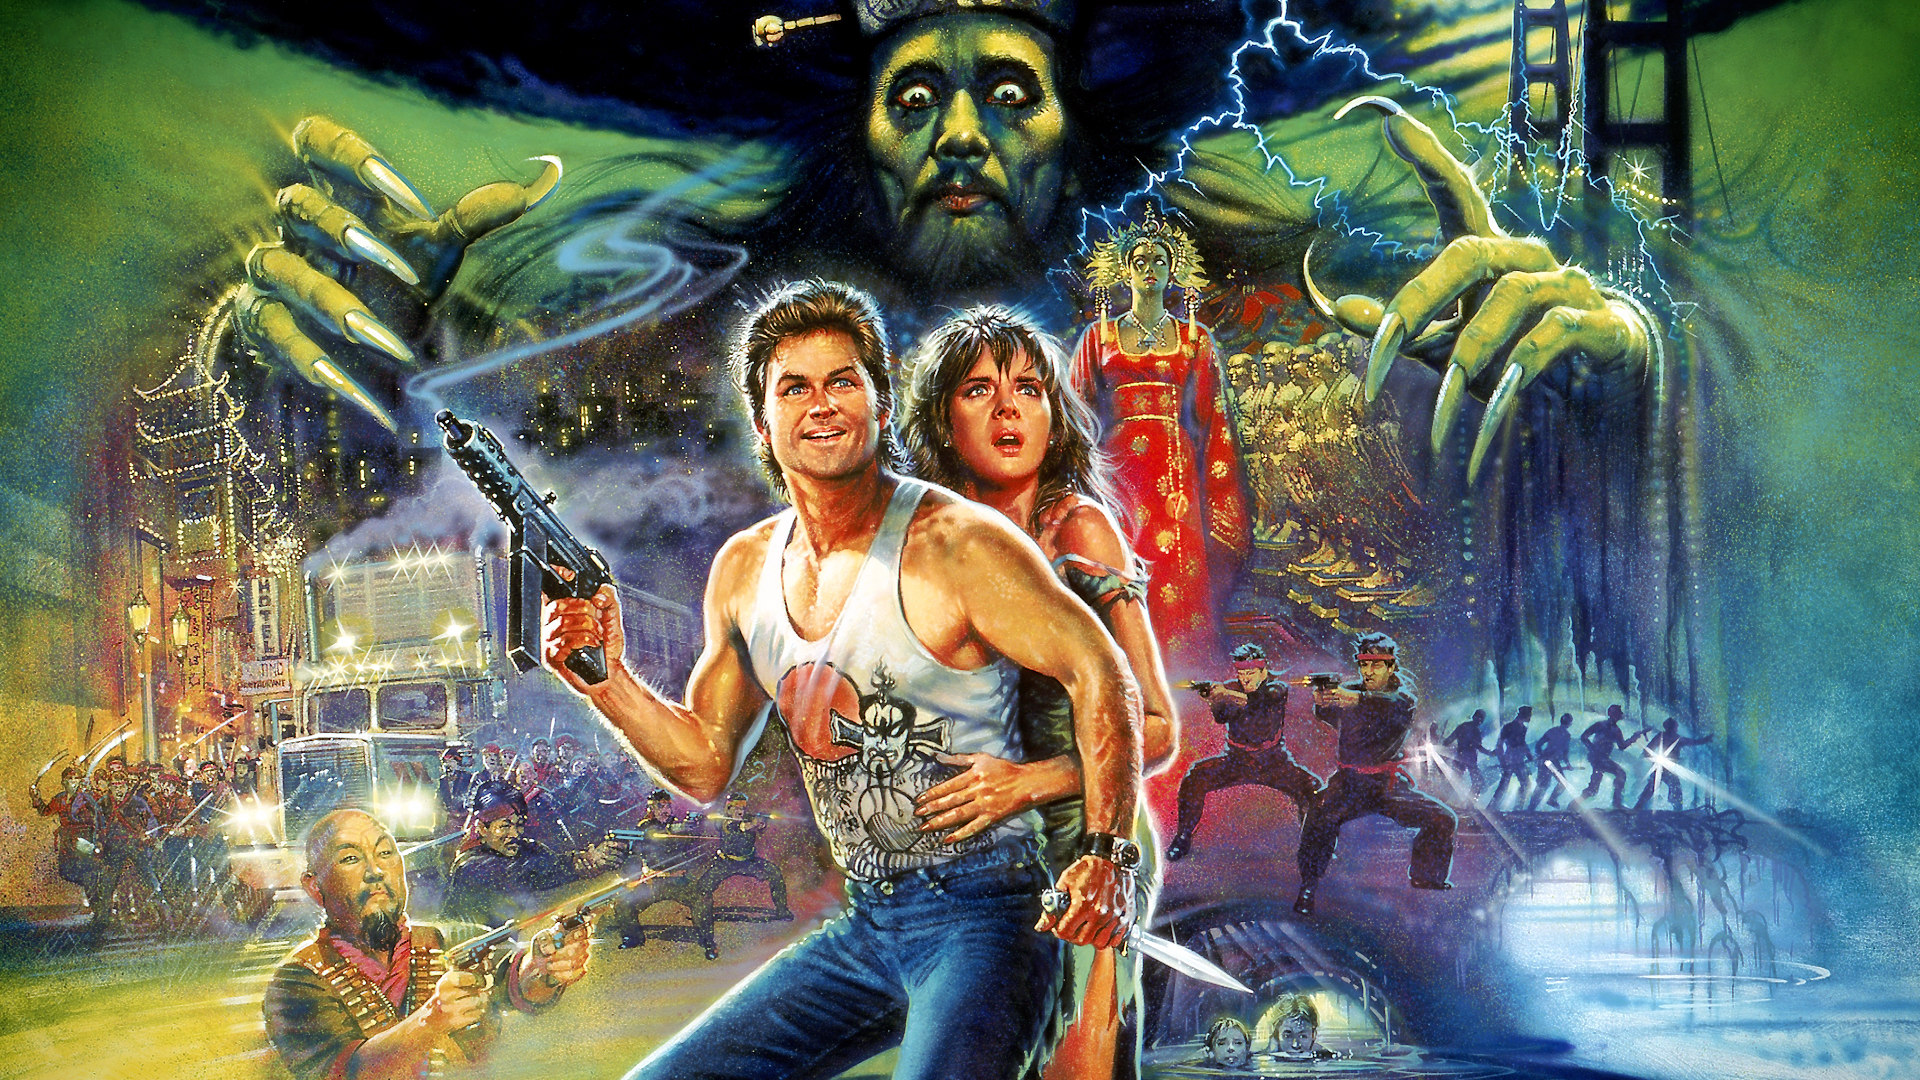 Big Trouble In Little China Pics, Movie Collection